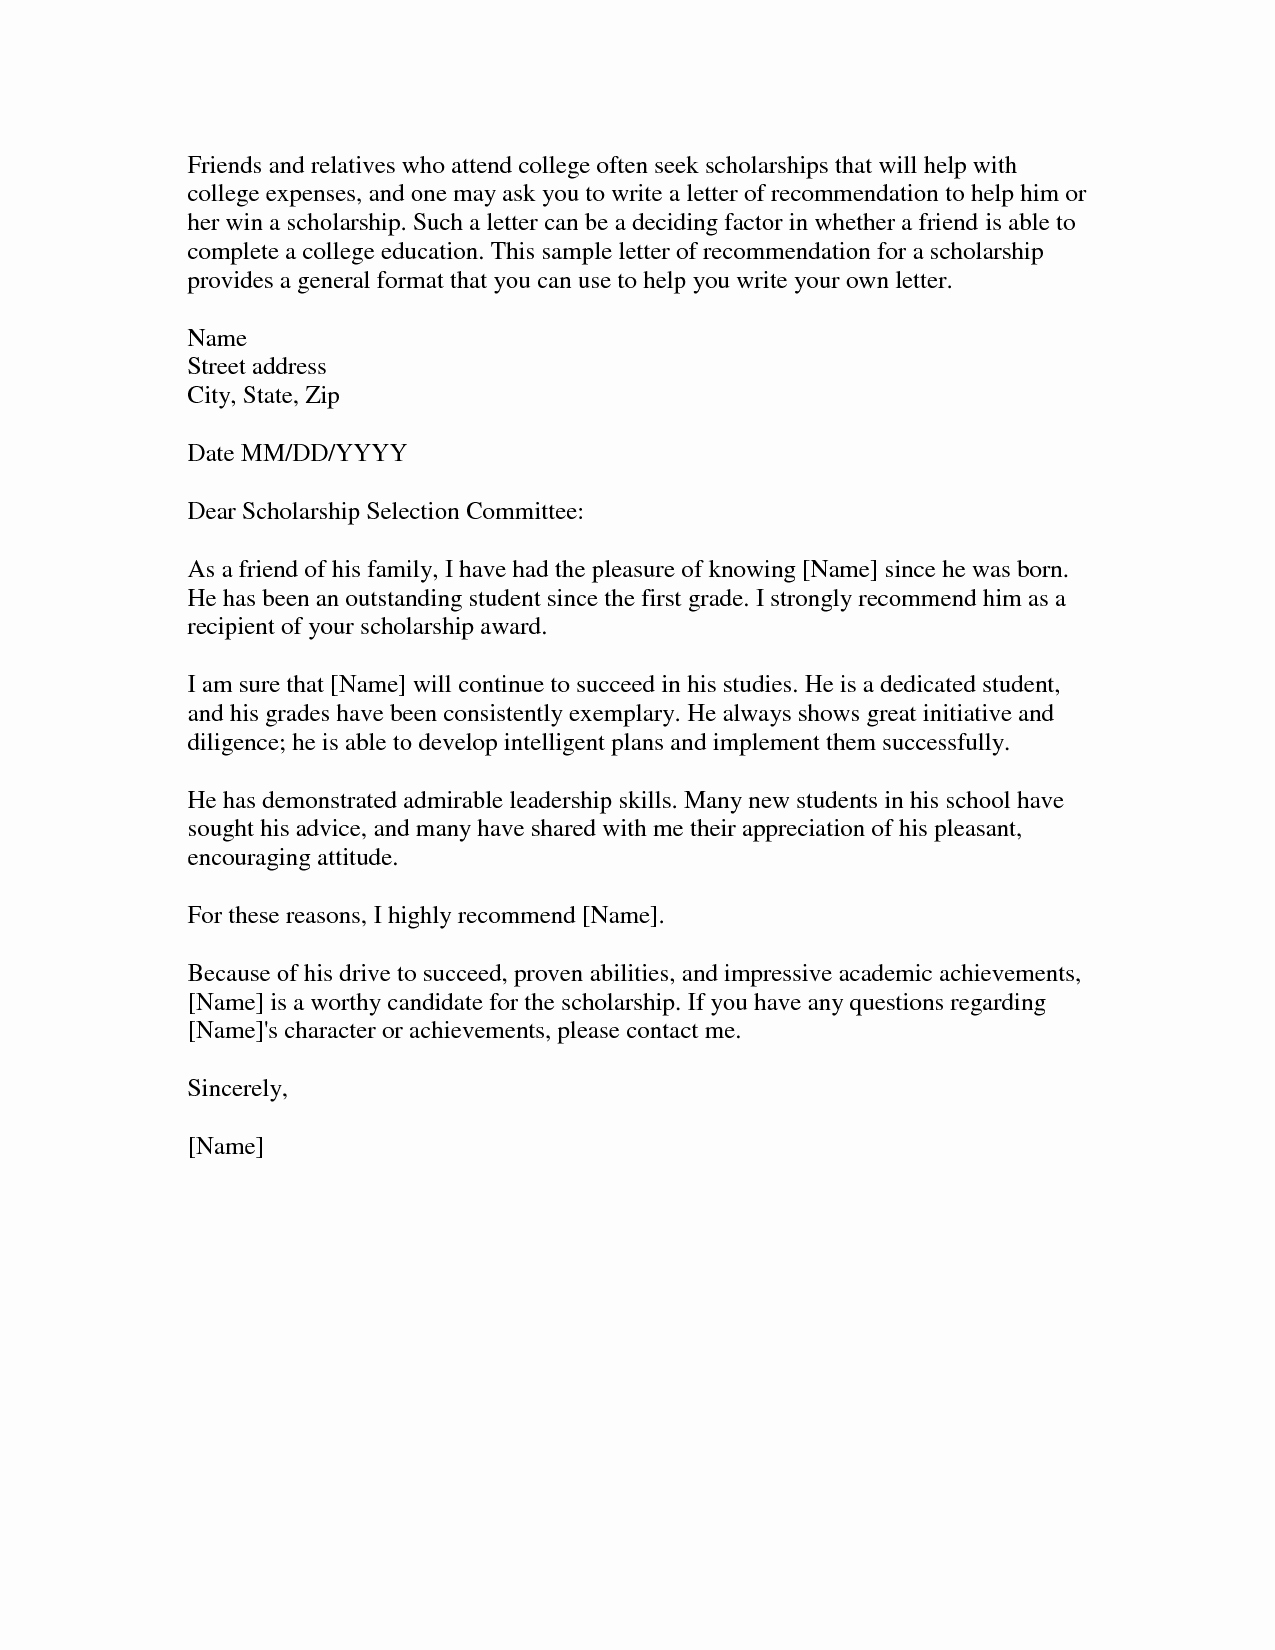 Scholarship Recommendation Letter From Friend Elegant Download Scholarship Re Mendation Letter Sample Word